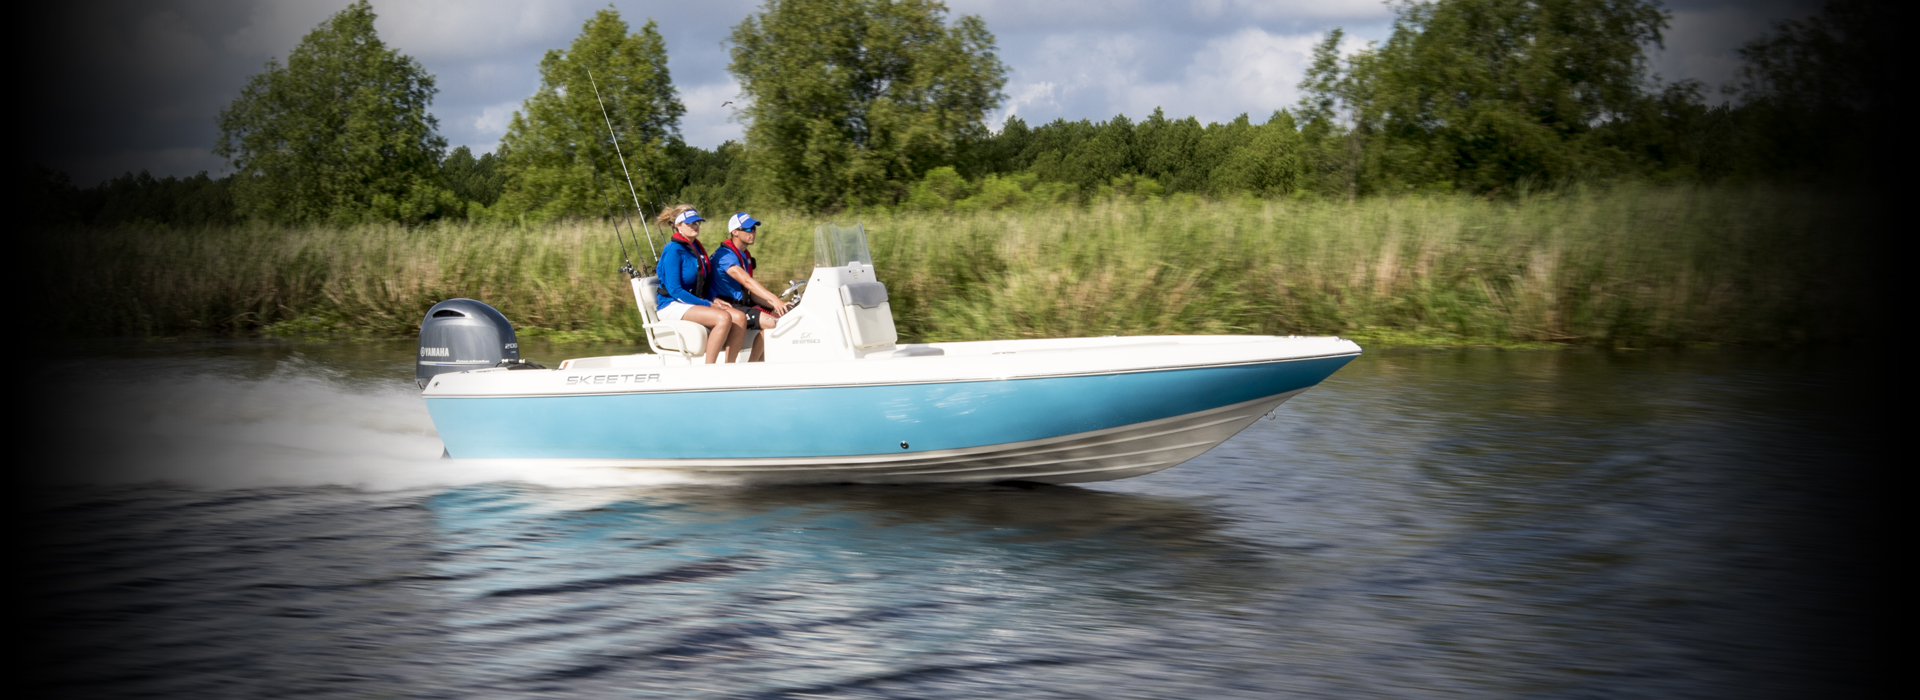 7cdb7 Skeeter_slider_1920x700_SX2250 skeeter boats  at couponss.co